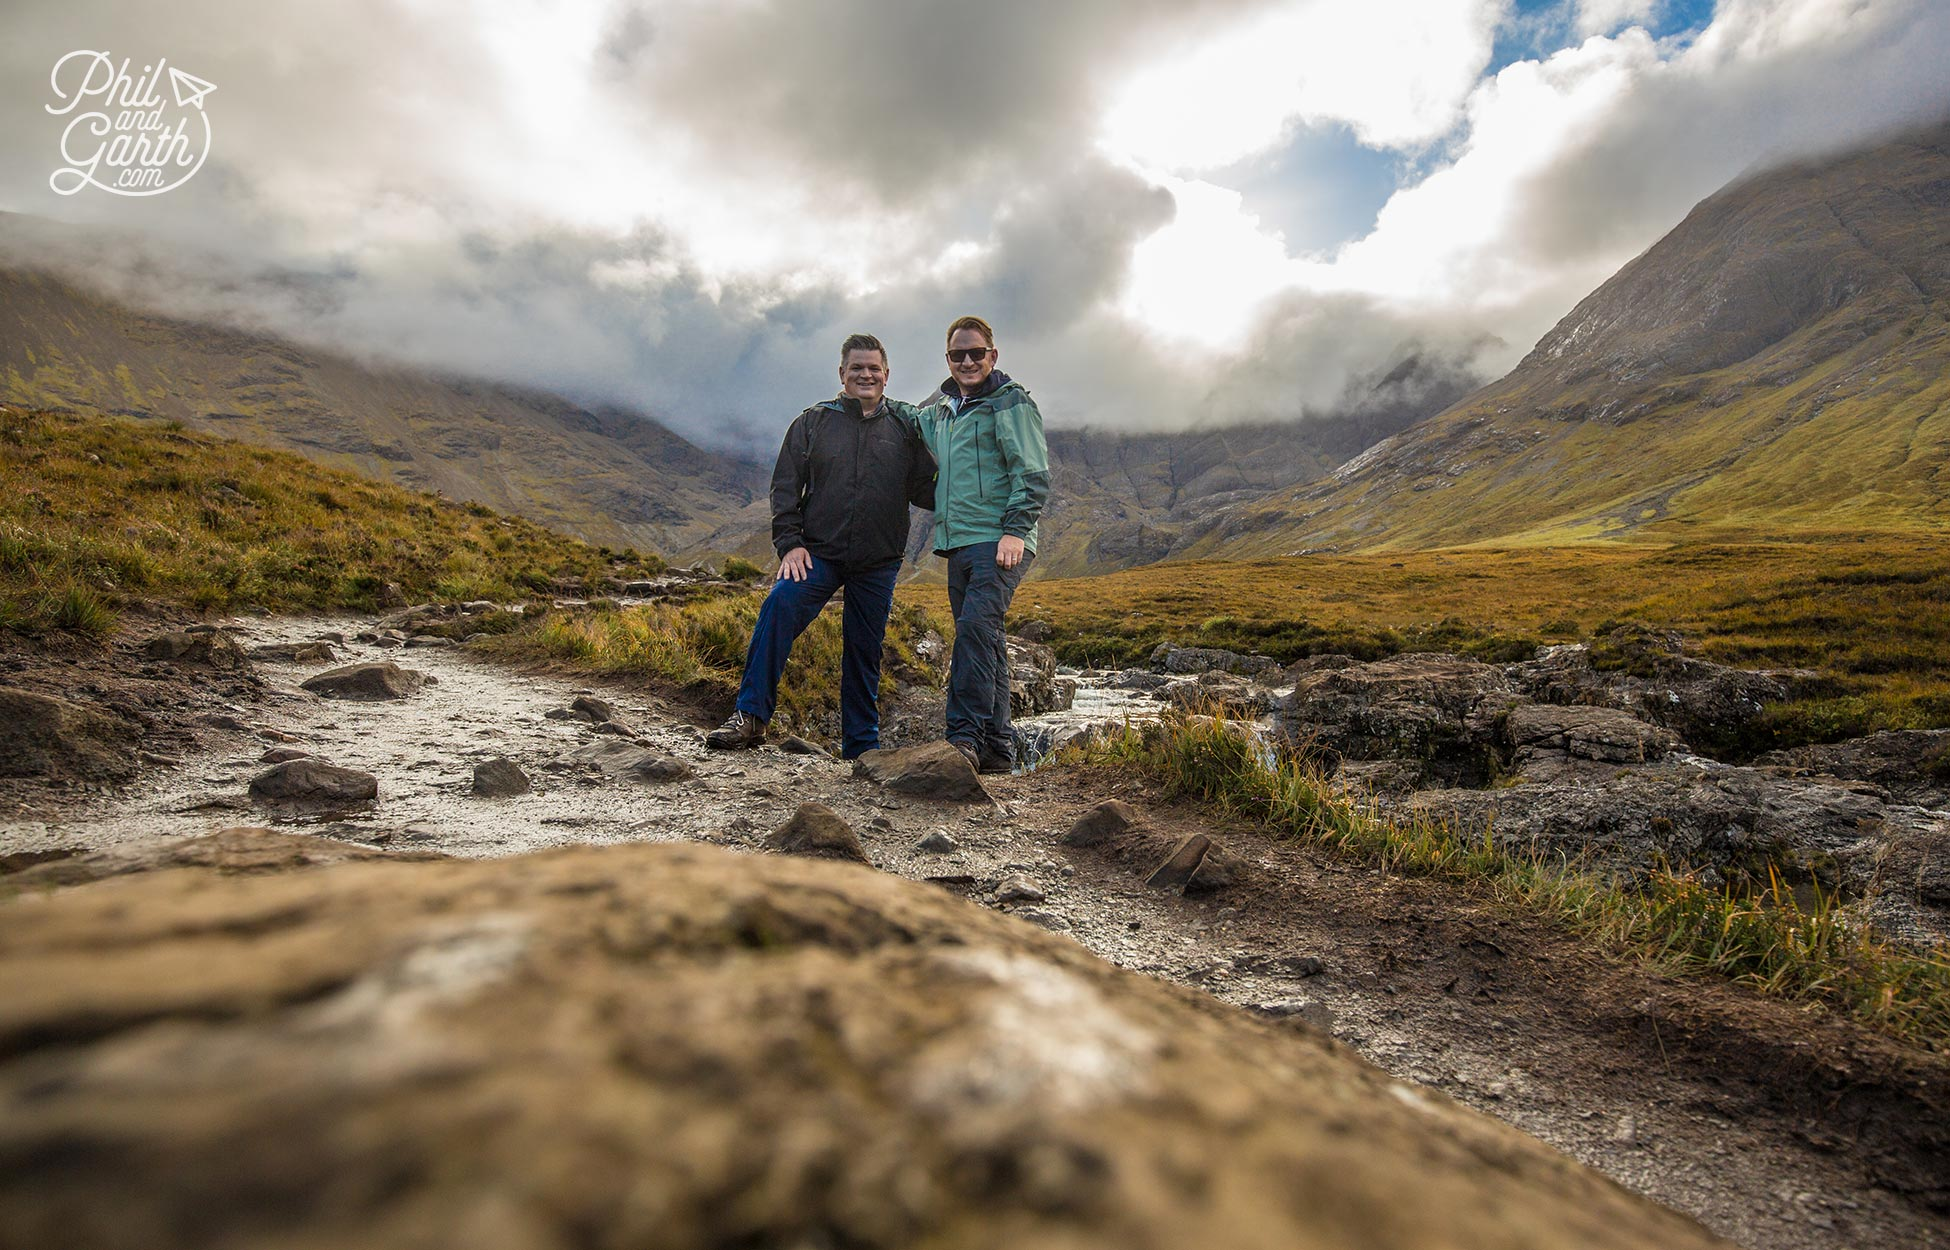 Phil and Garth on the Isle of Skye